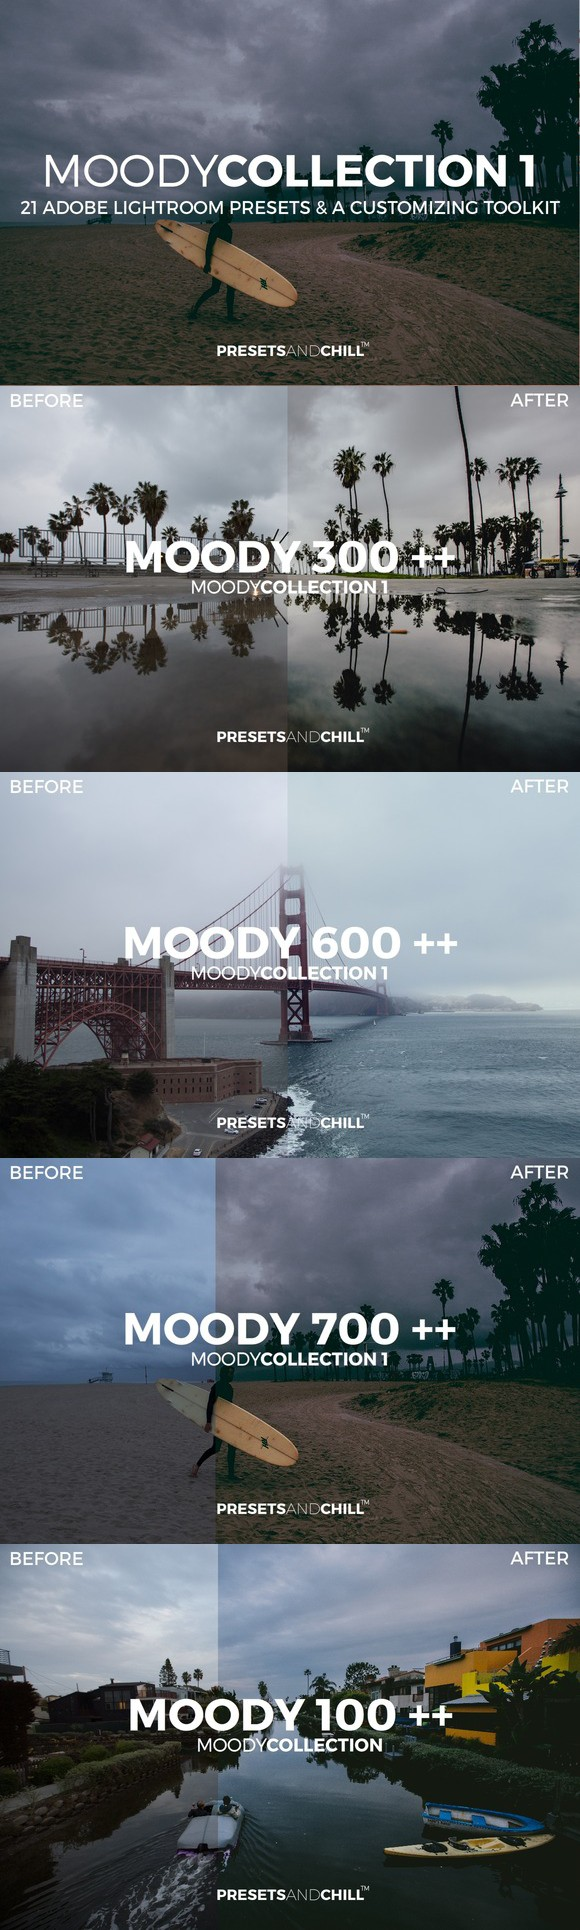 MOODY COLLECTION 1 - Adobe Lightroom. Plug-ins. $7.00